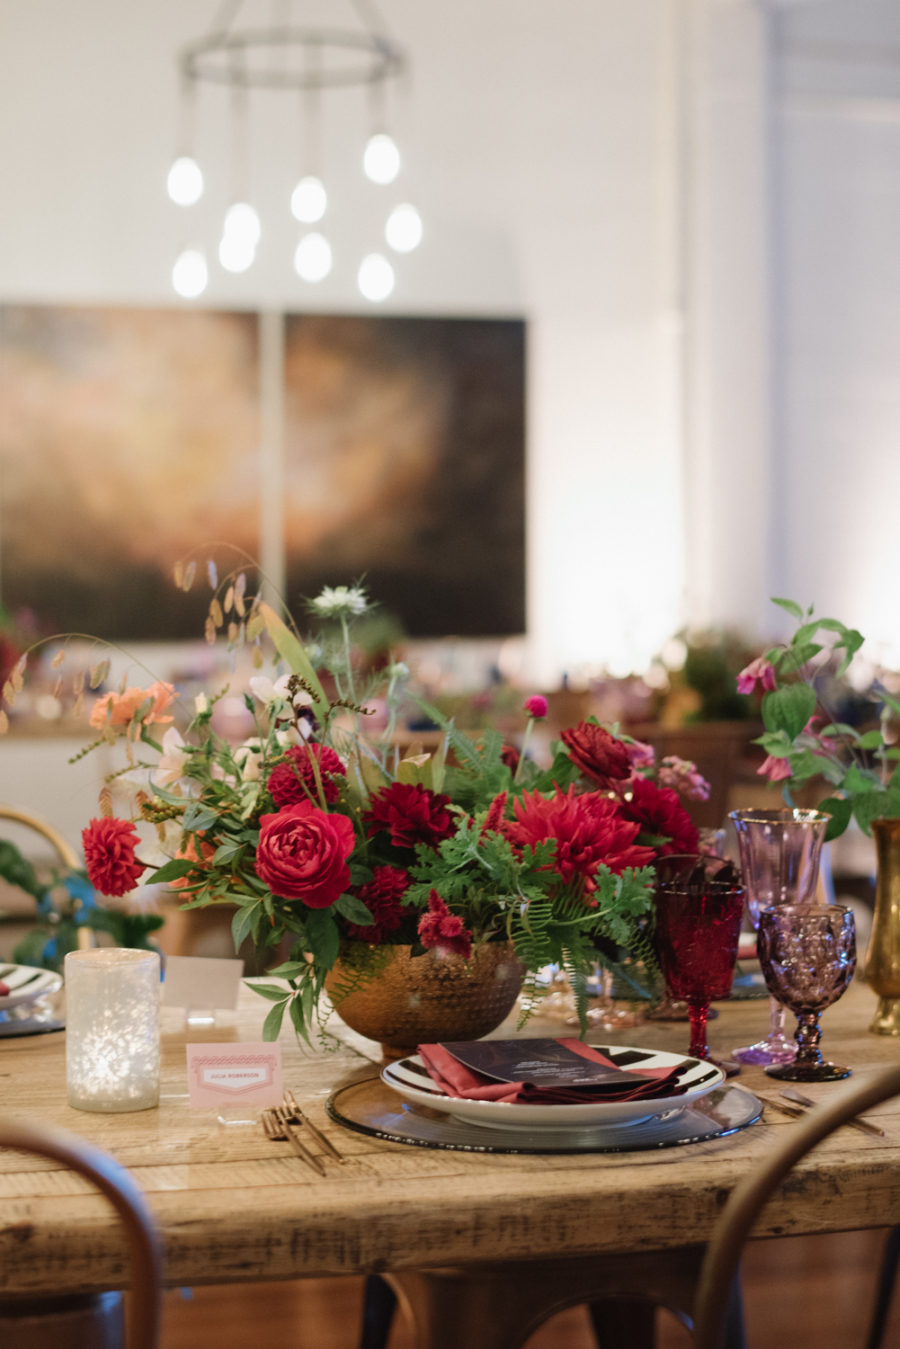 The wedding florals and glasses were jewel toned, red, burgundy and purple